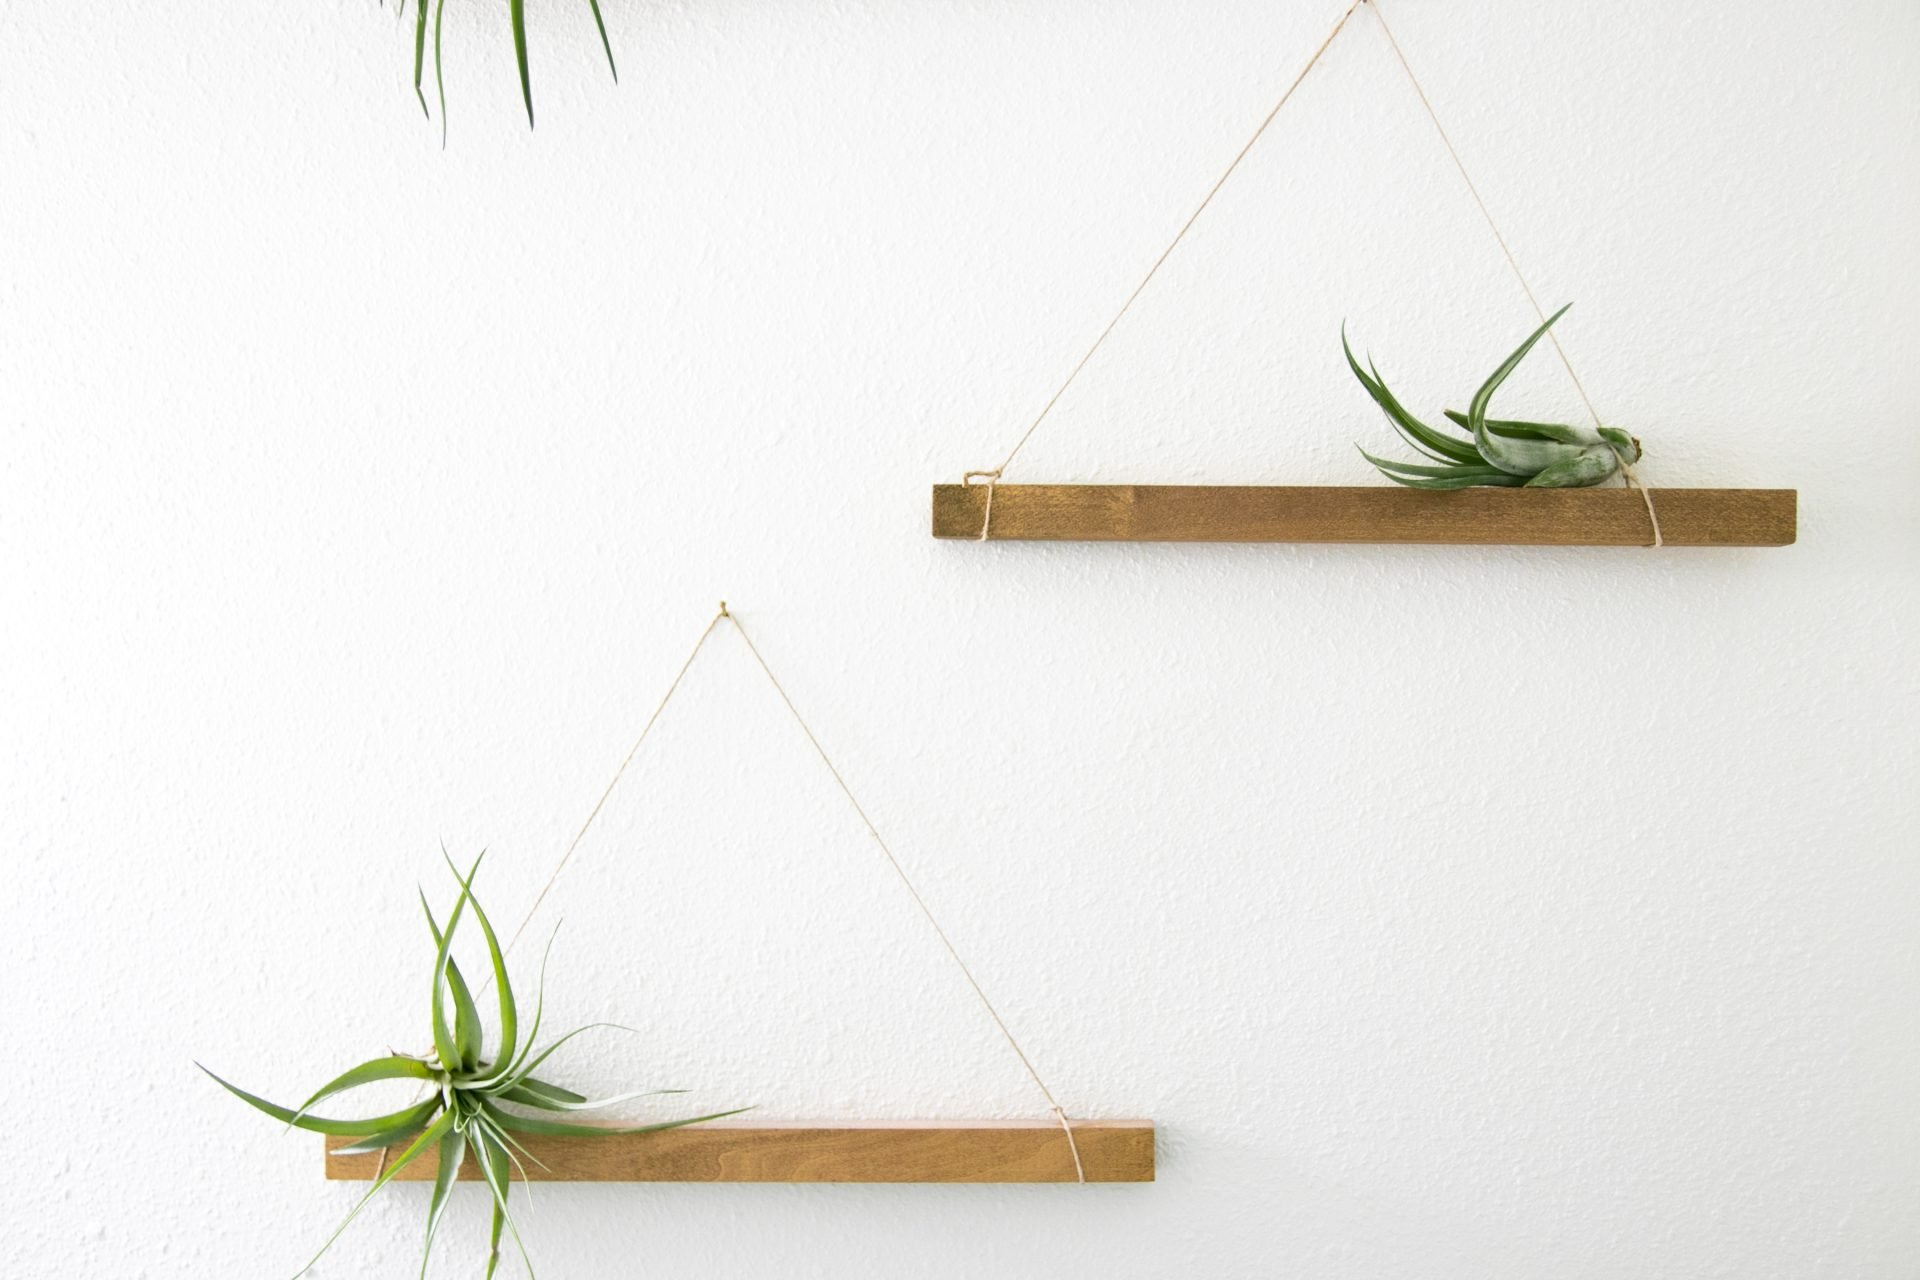 Unpotted Succulent Plants On Hanging Wooden Shelves